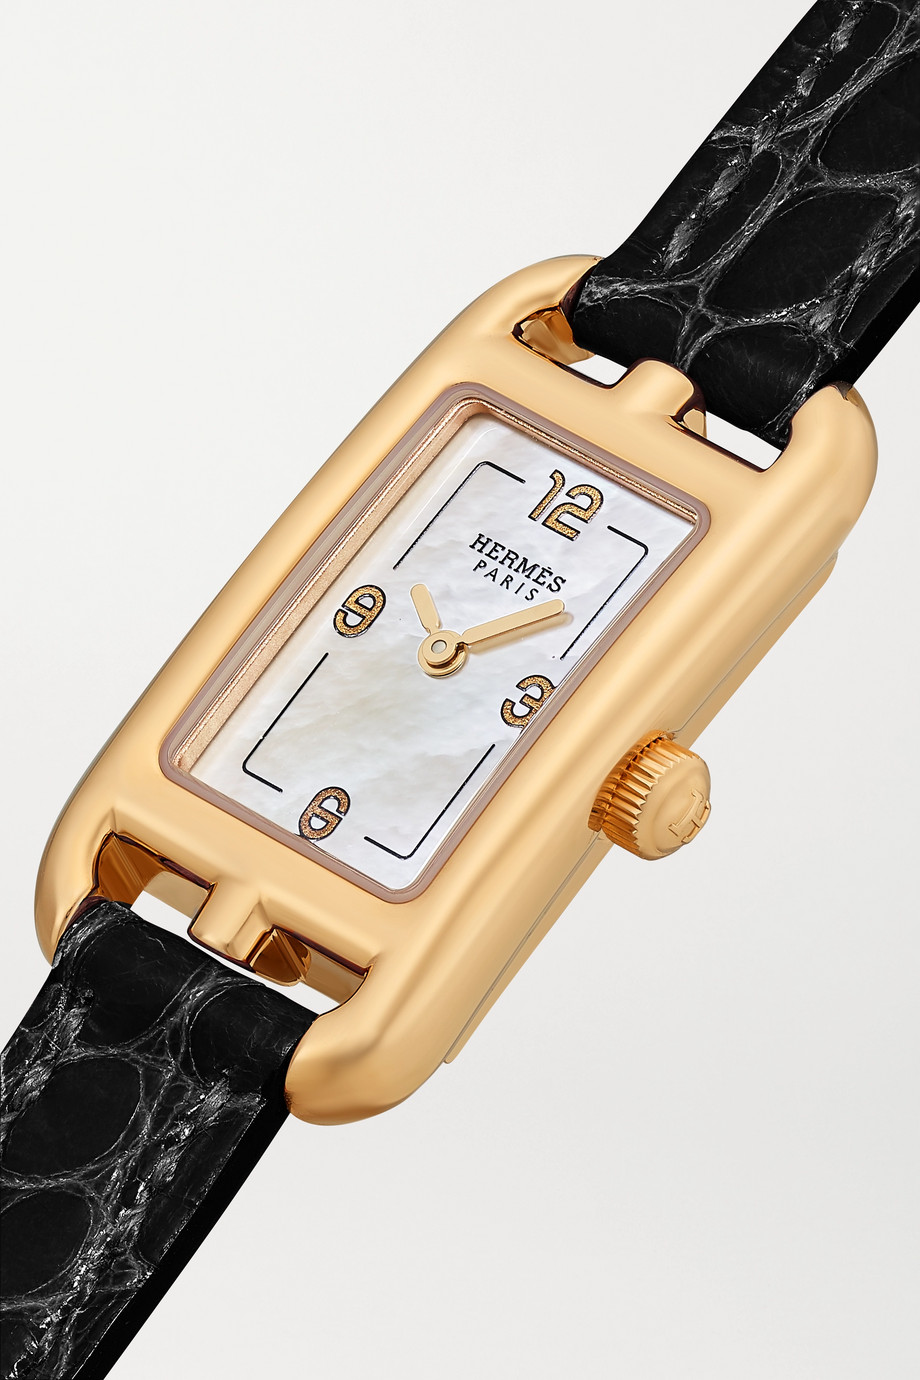 Hermès Timepieces Nantucket 17mm very small 18-karat rose gold, alligator and mother-of-pearl watch